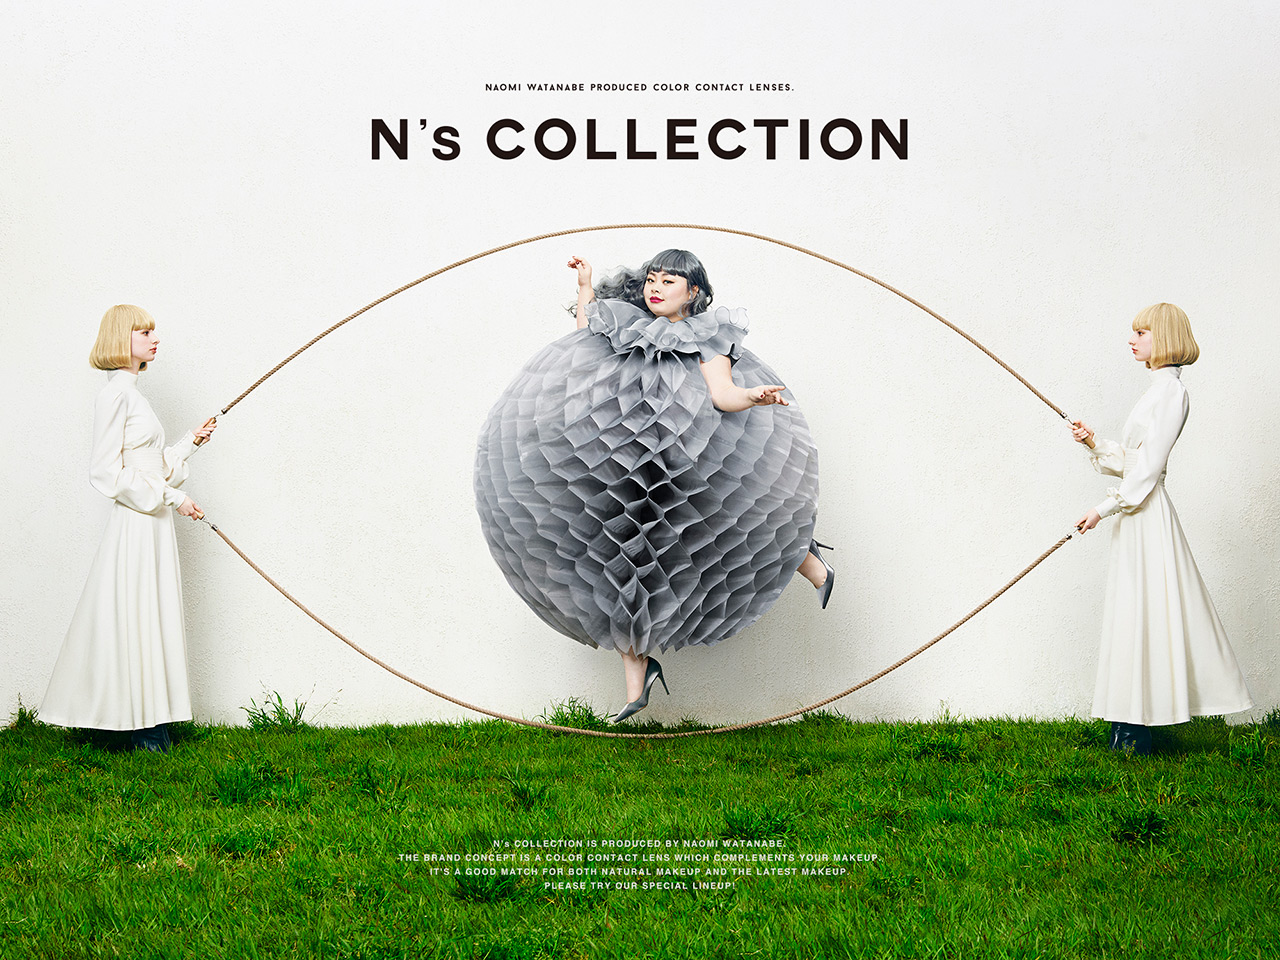 nscollection エヌズコレクション